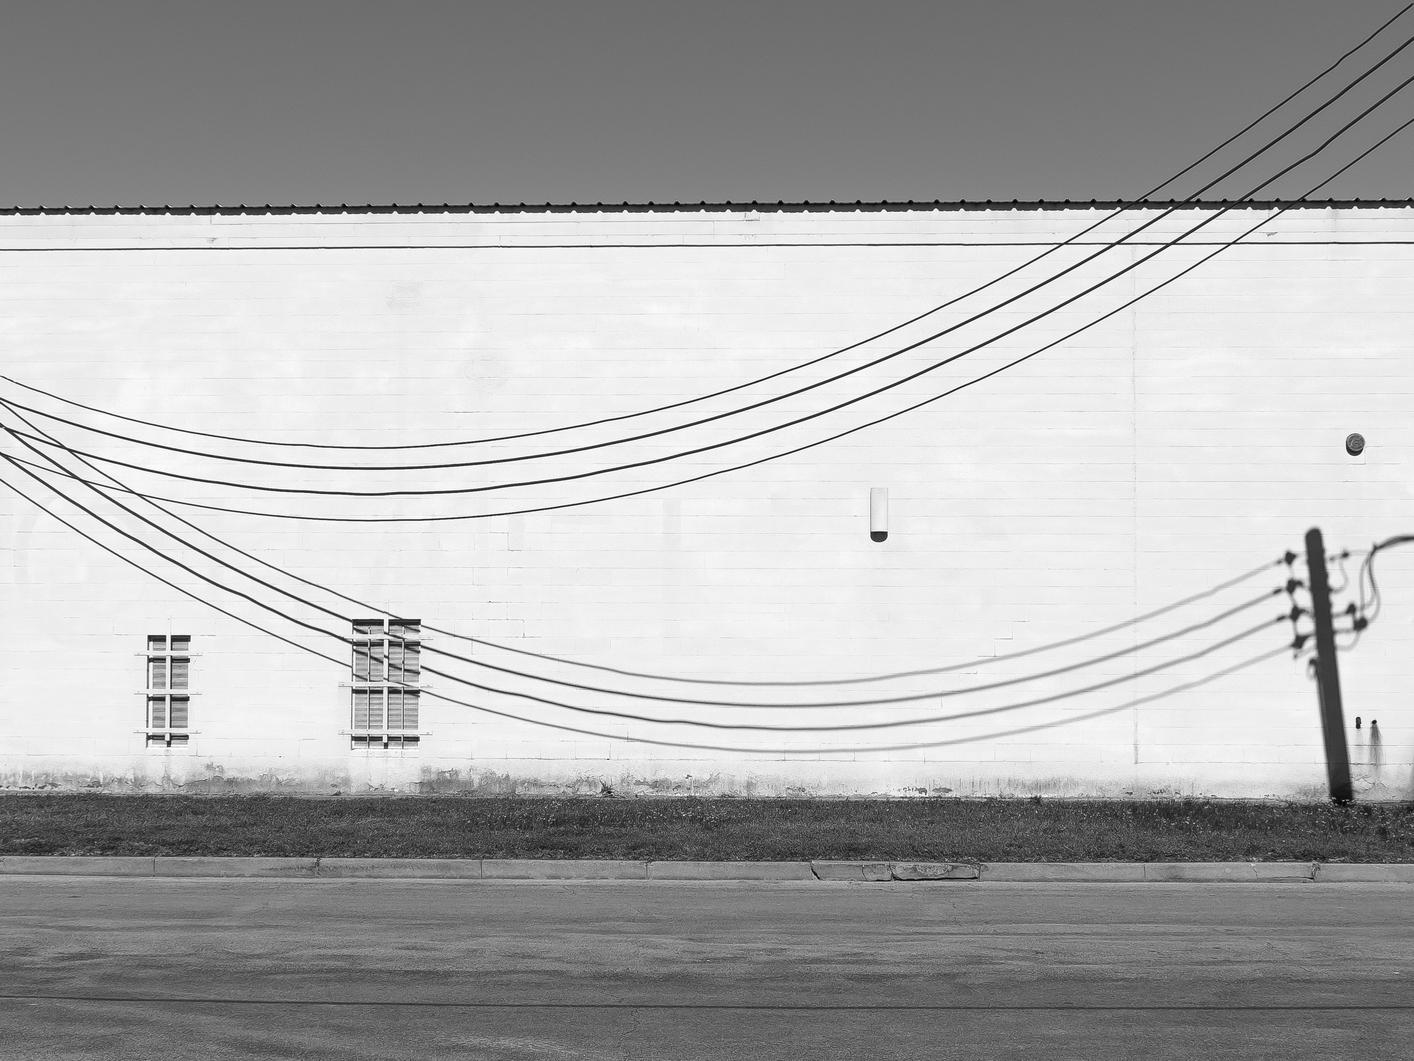 Wall Highway 45, Texas, USA, 2017